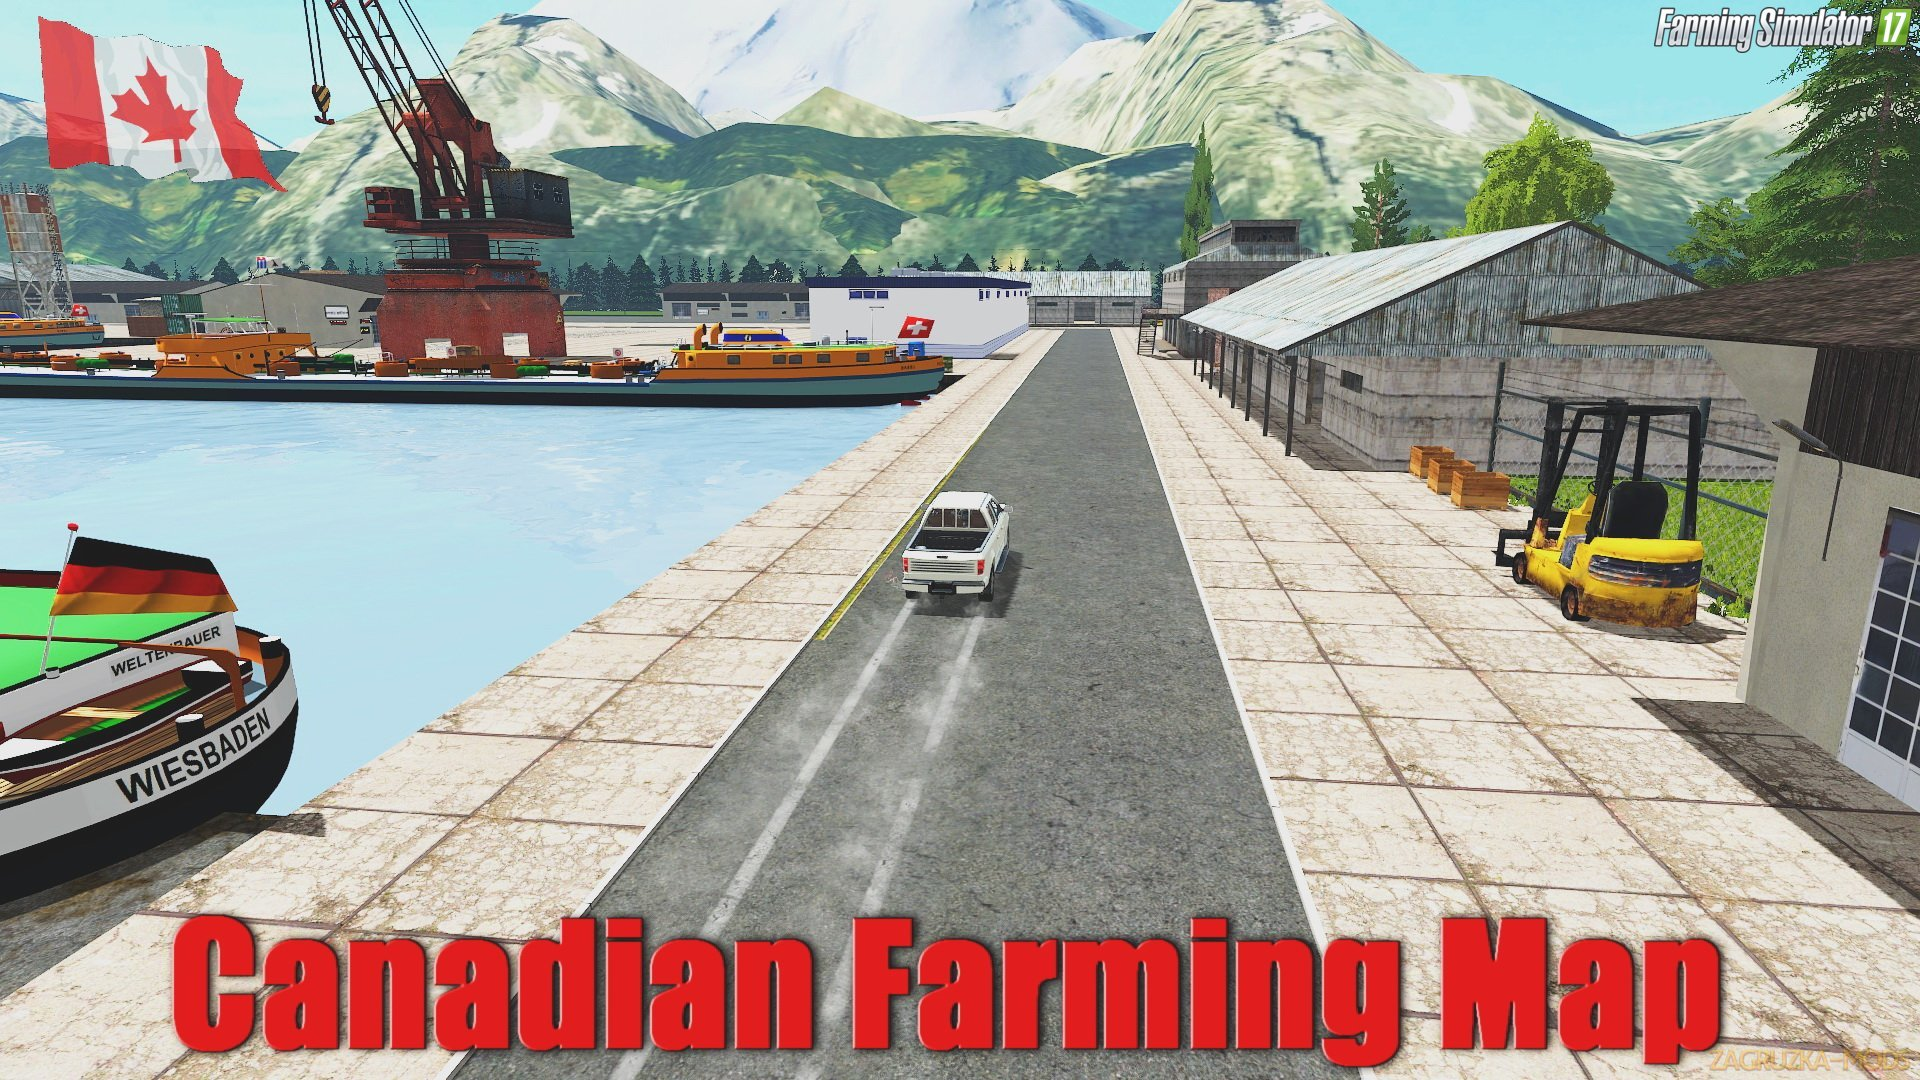 Canadian Farming Map v1.0 (Preview Version) for FS 17